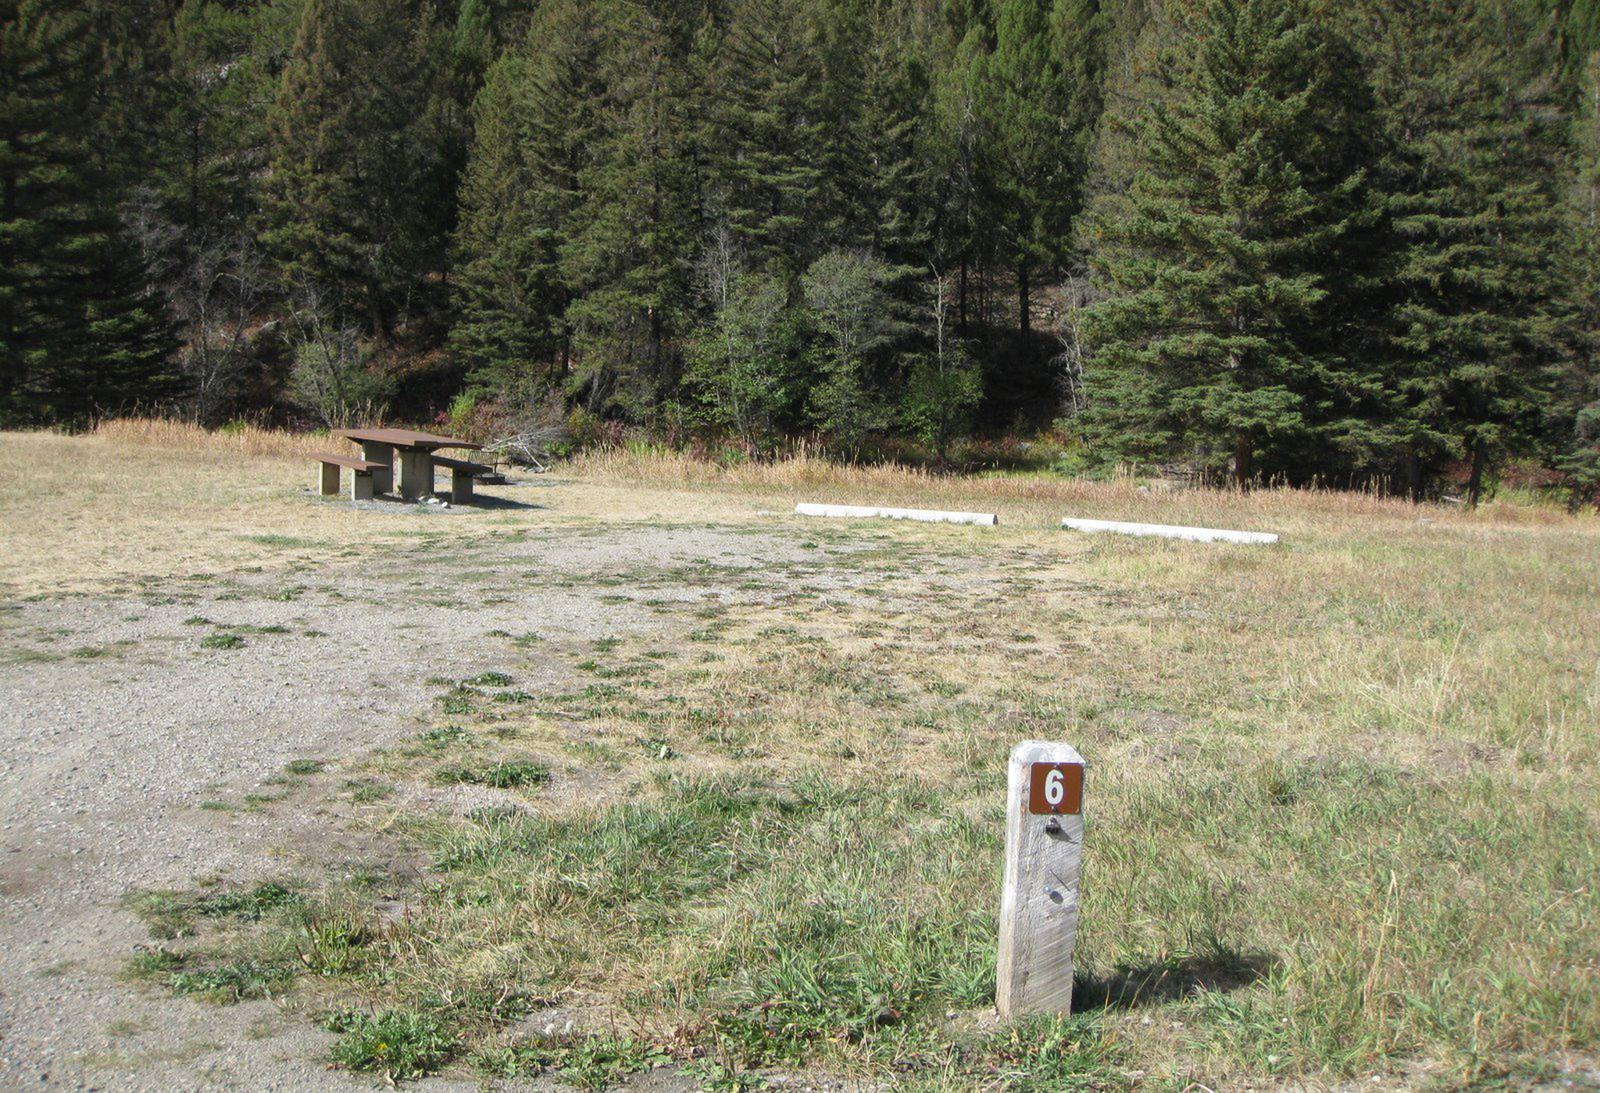 Site 6 campsite - pine trees along river, picnic table & fire ringSite 6